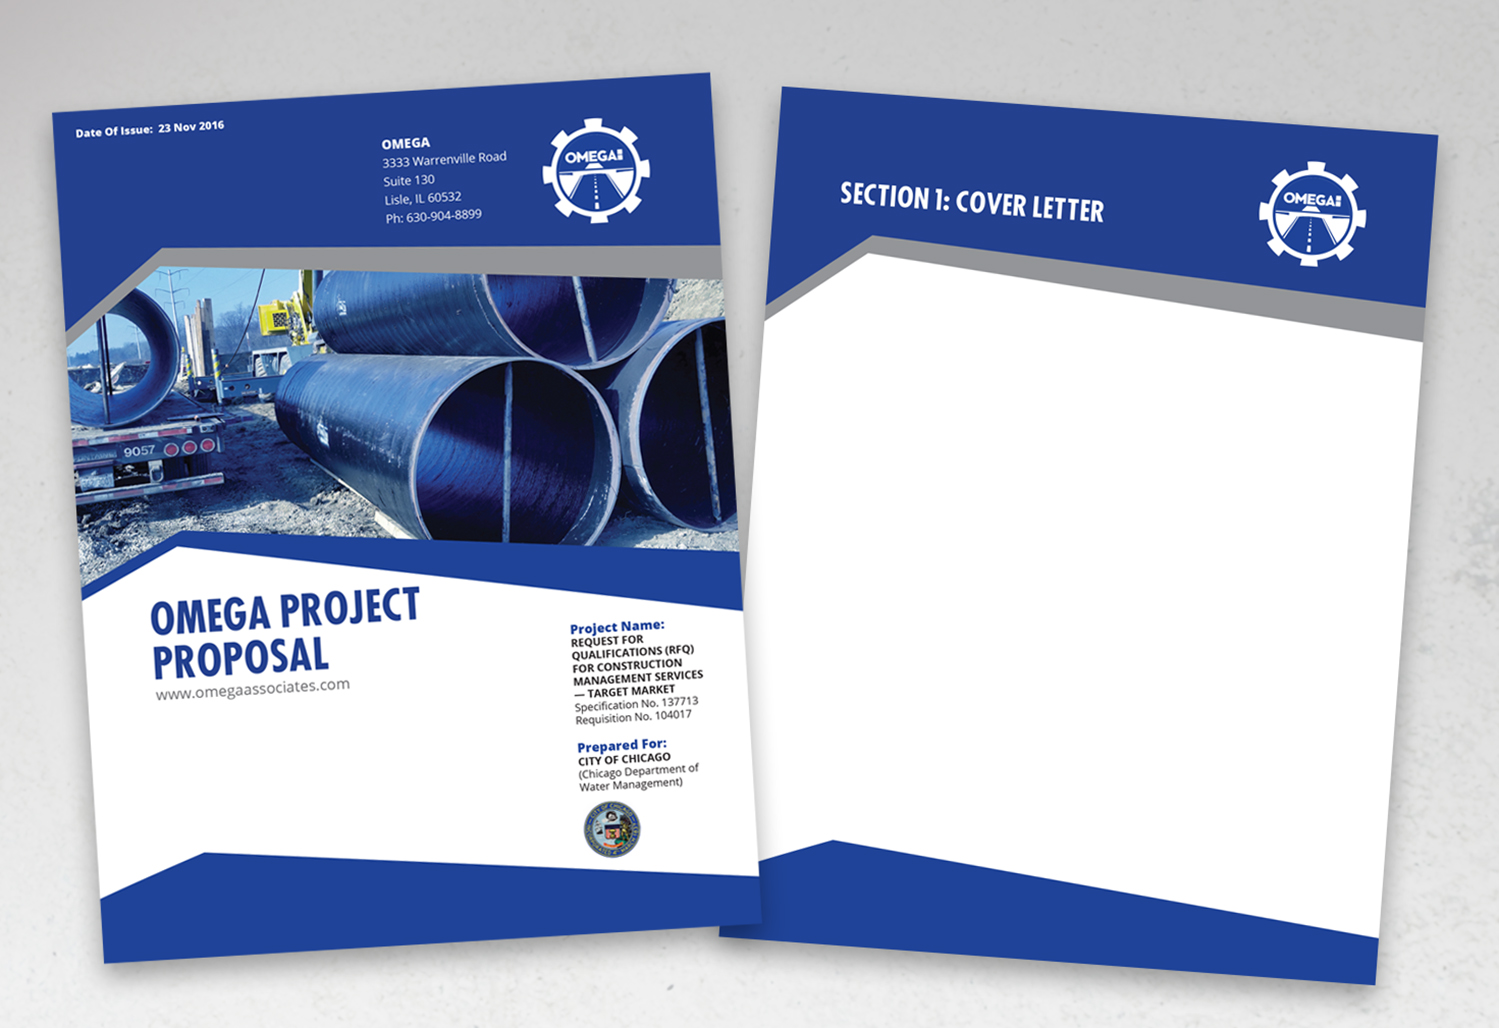 Perfect Print Design By Andrew3344 For Engineering Proposal Cover And Page Dividers    Design #12780890 Intended For Proposal Cover Page Design